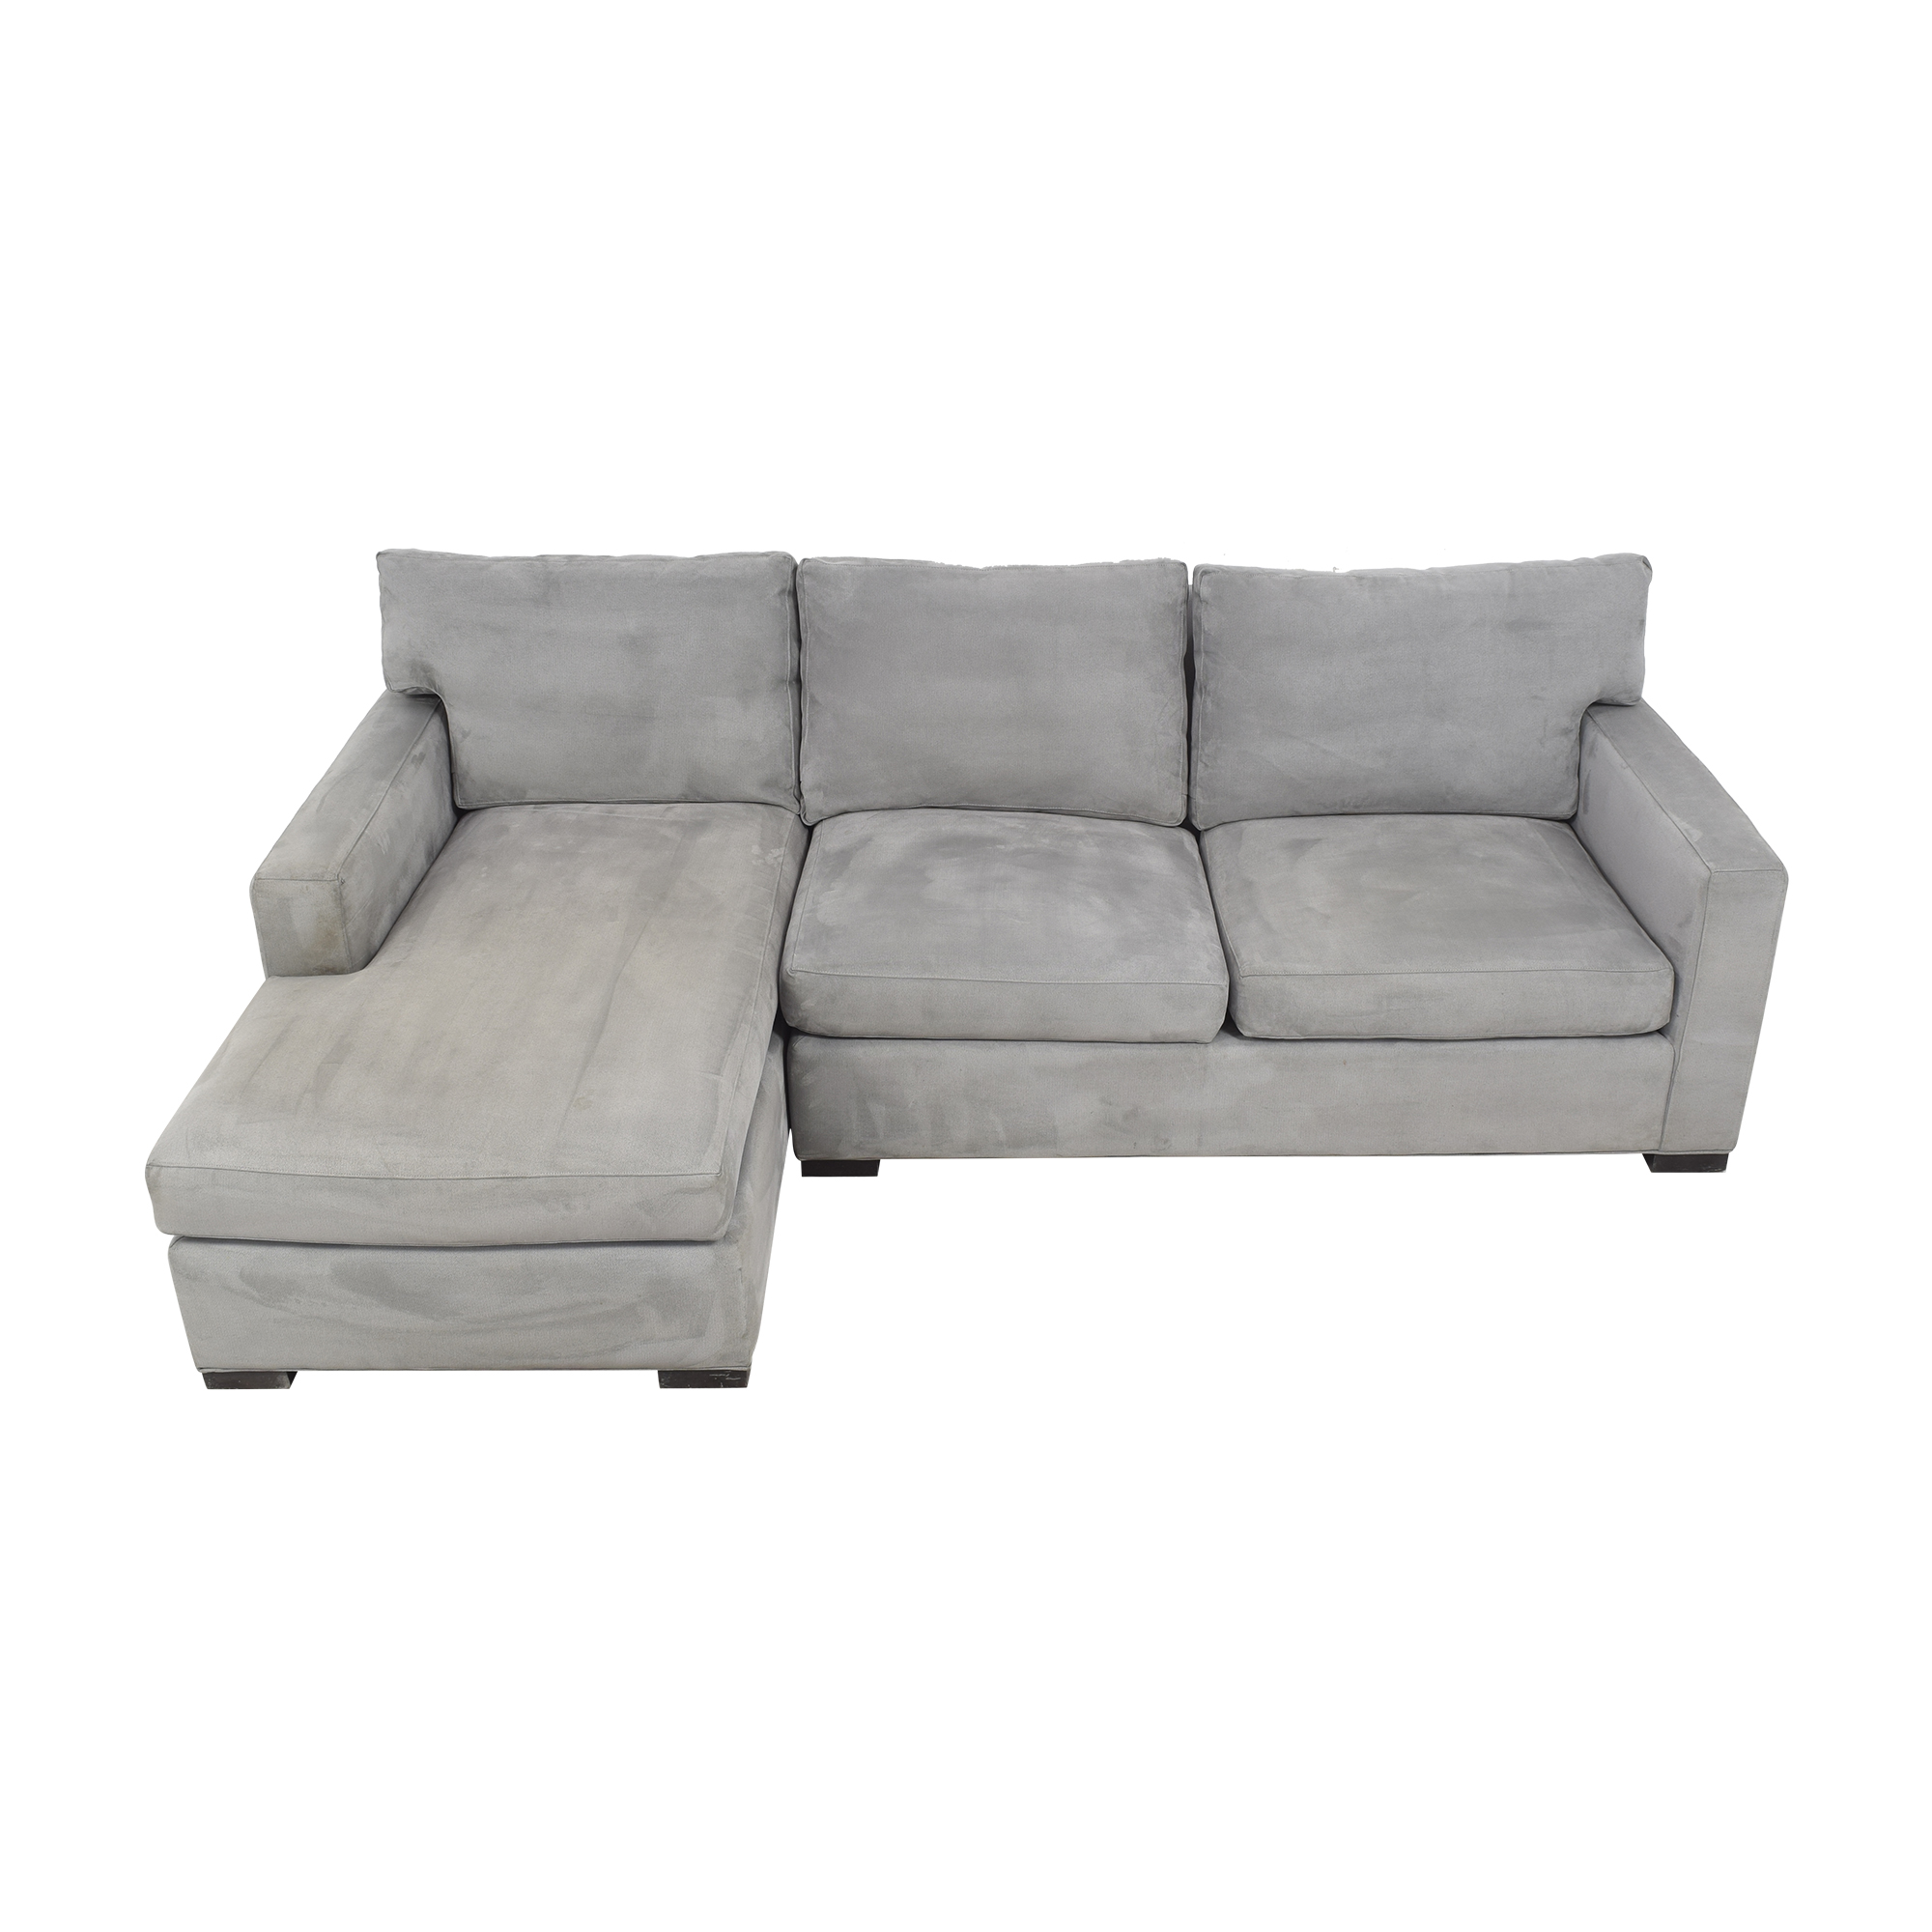 Crate & Barrel Crate & Barrel Axis II Chaise Sectional Sofa nj